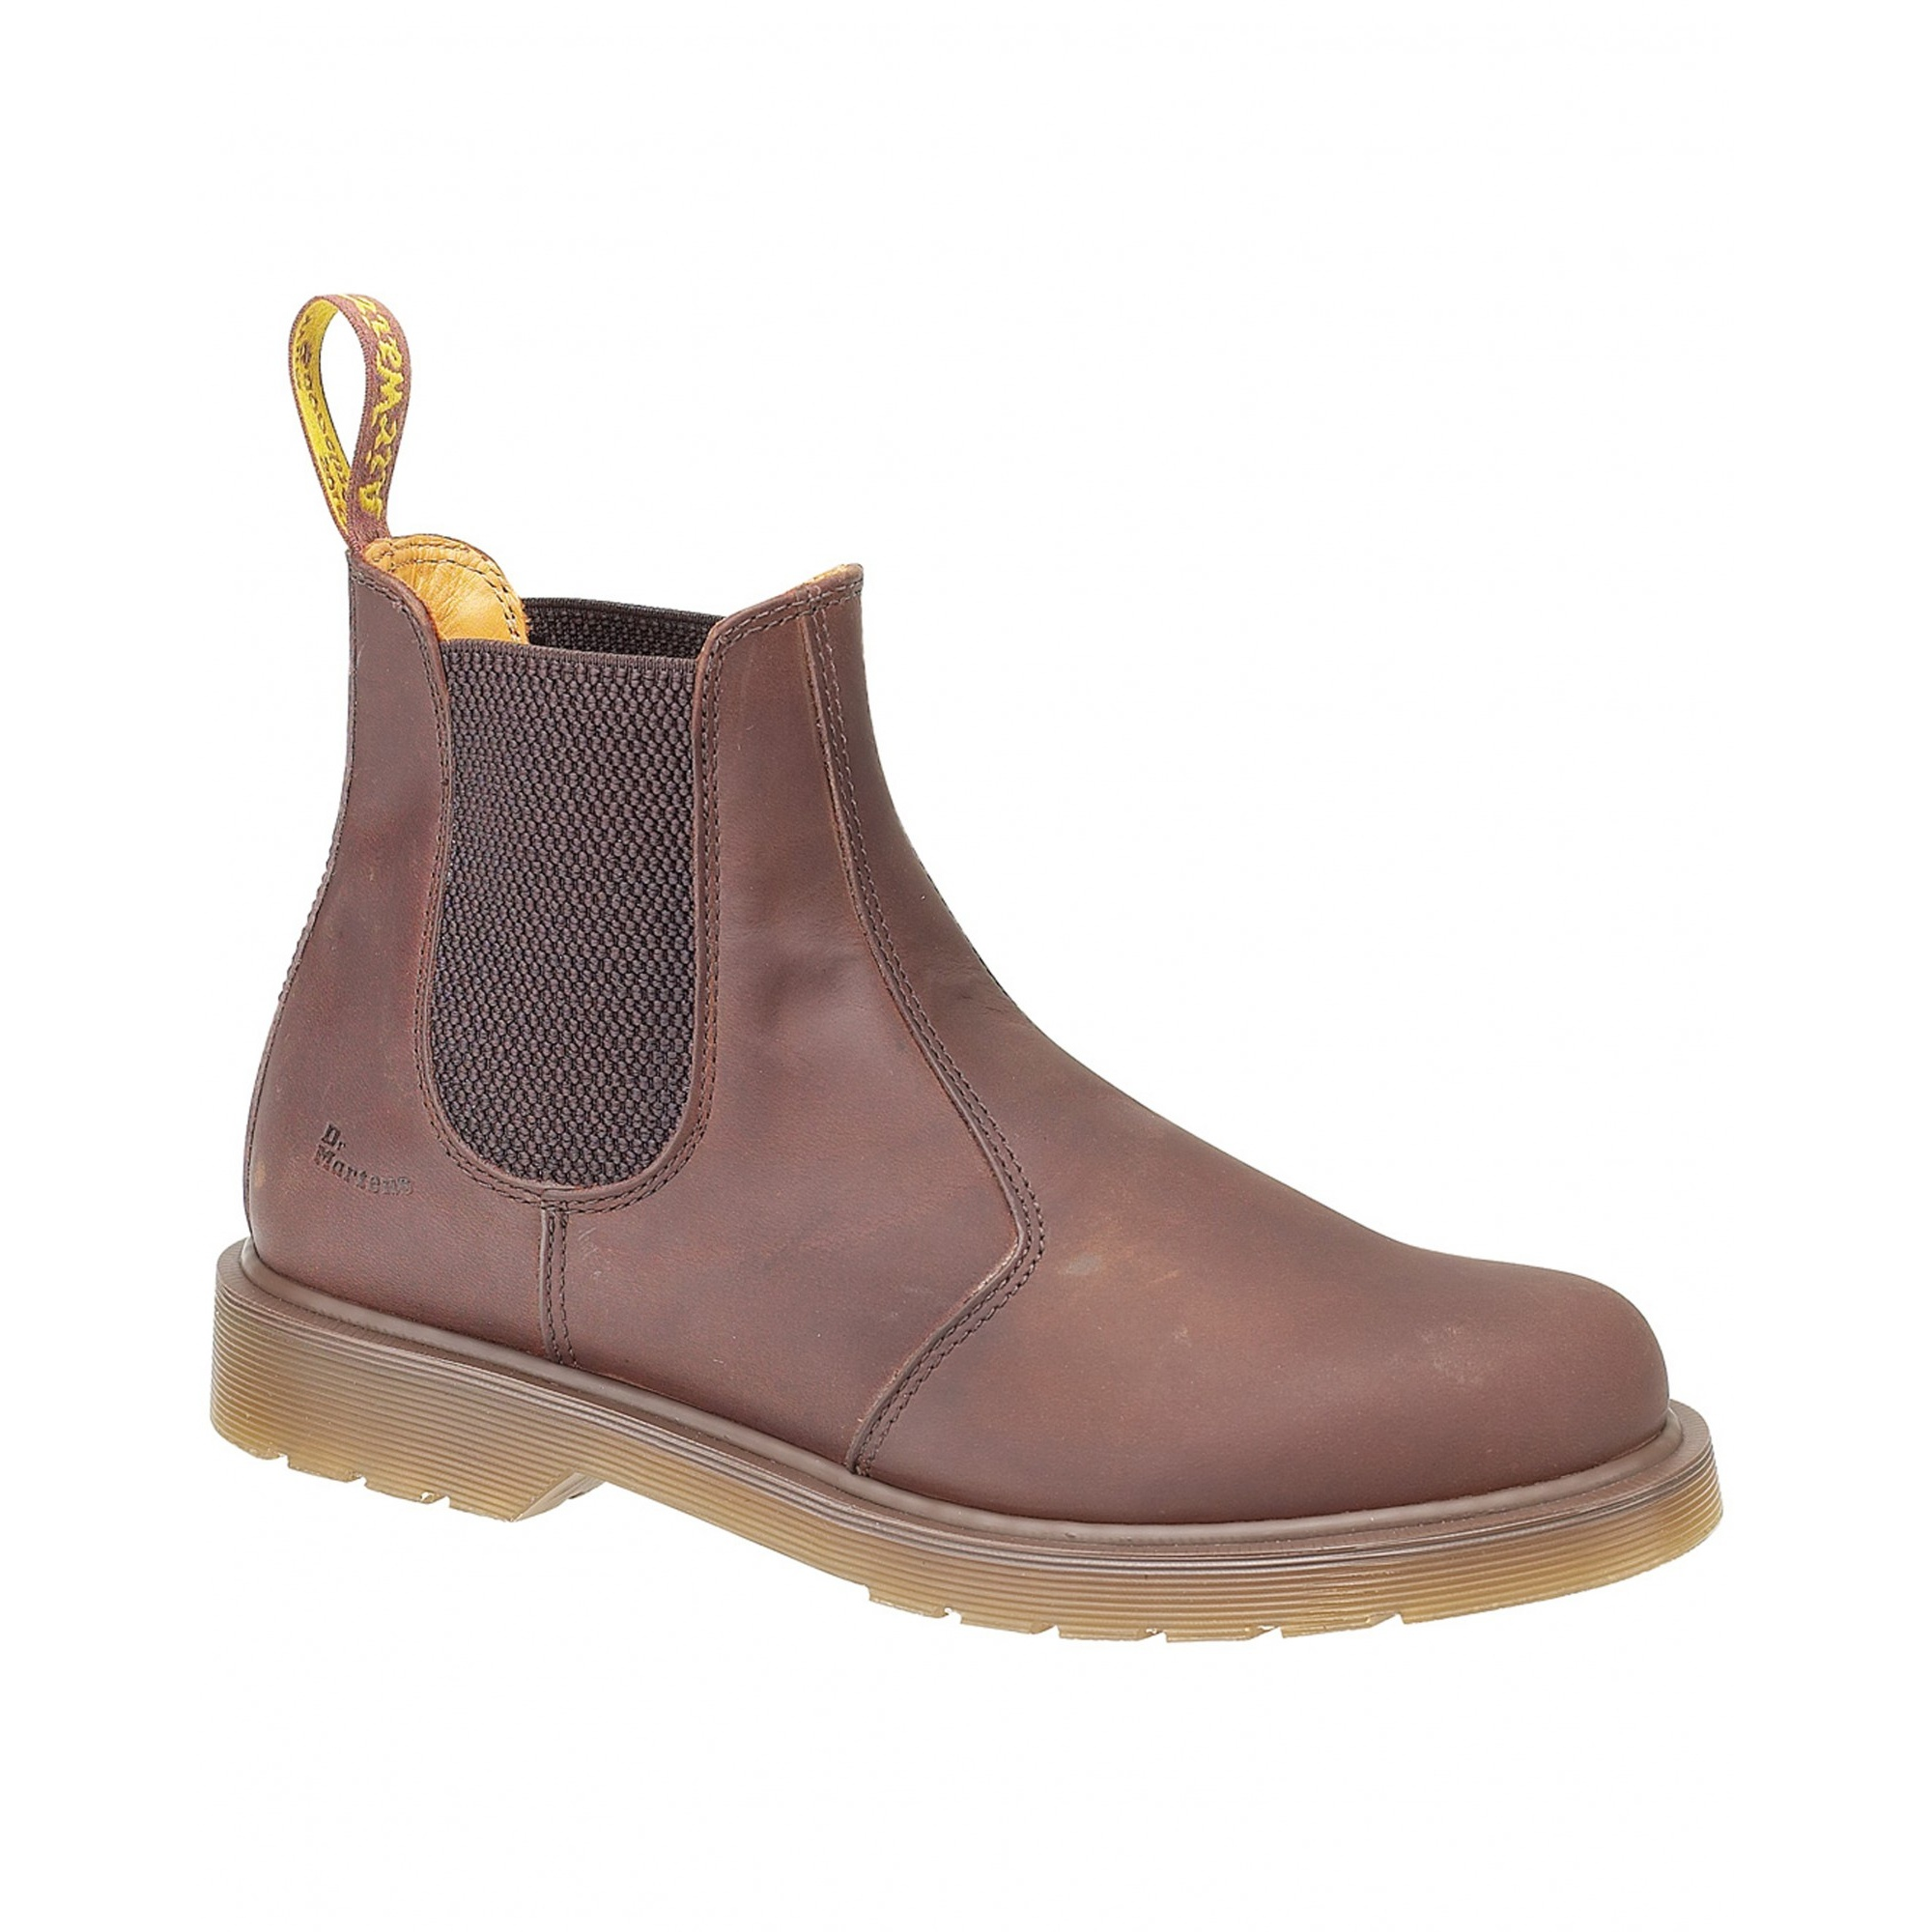 Awesome Dr Martens Women S 2976 Chelsea Boots Dr Martens Women